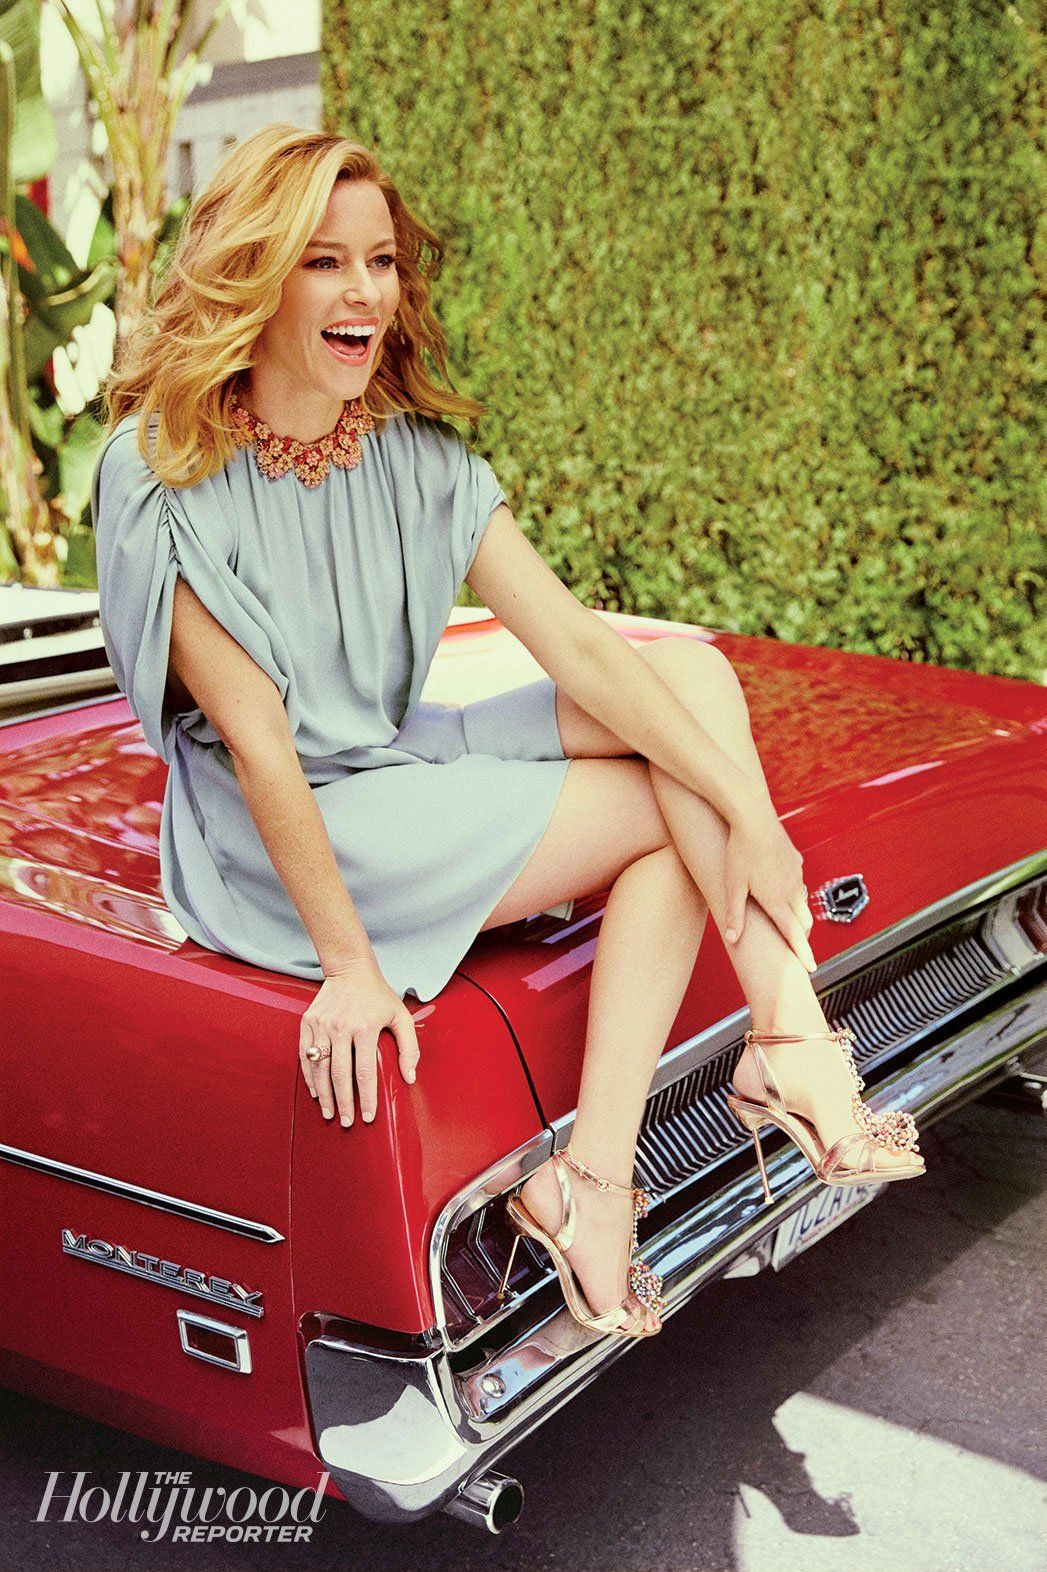 Absolutely superb piece on the amazing Elizabeth Banks and women in film by The Hollywood Reporter.